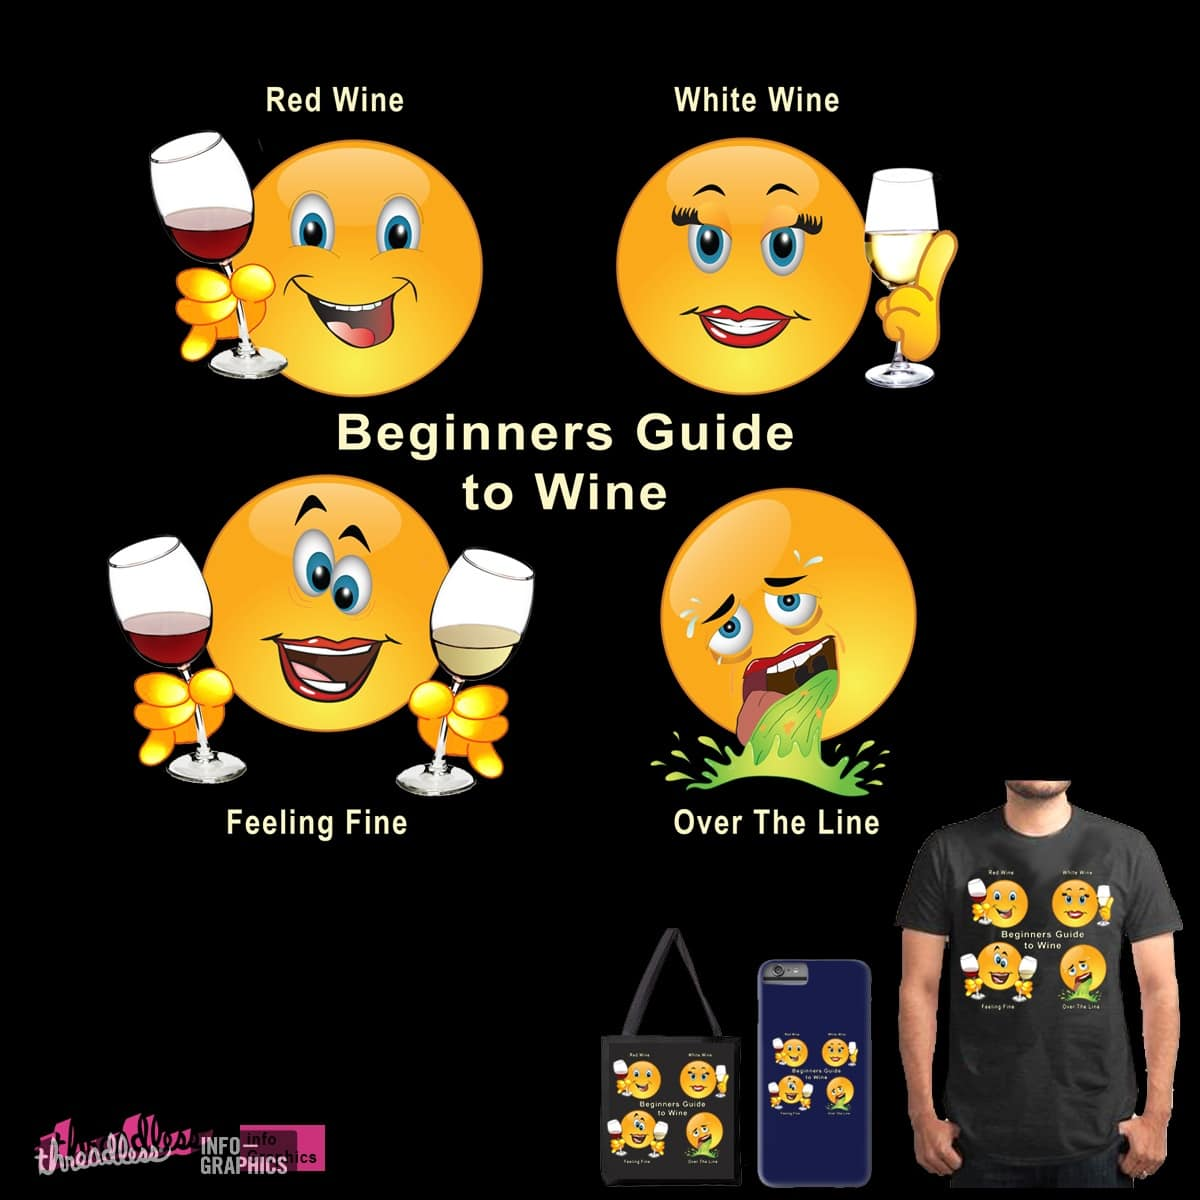 Wine guide by digitalswirl on Threadless